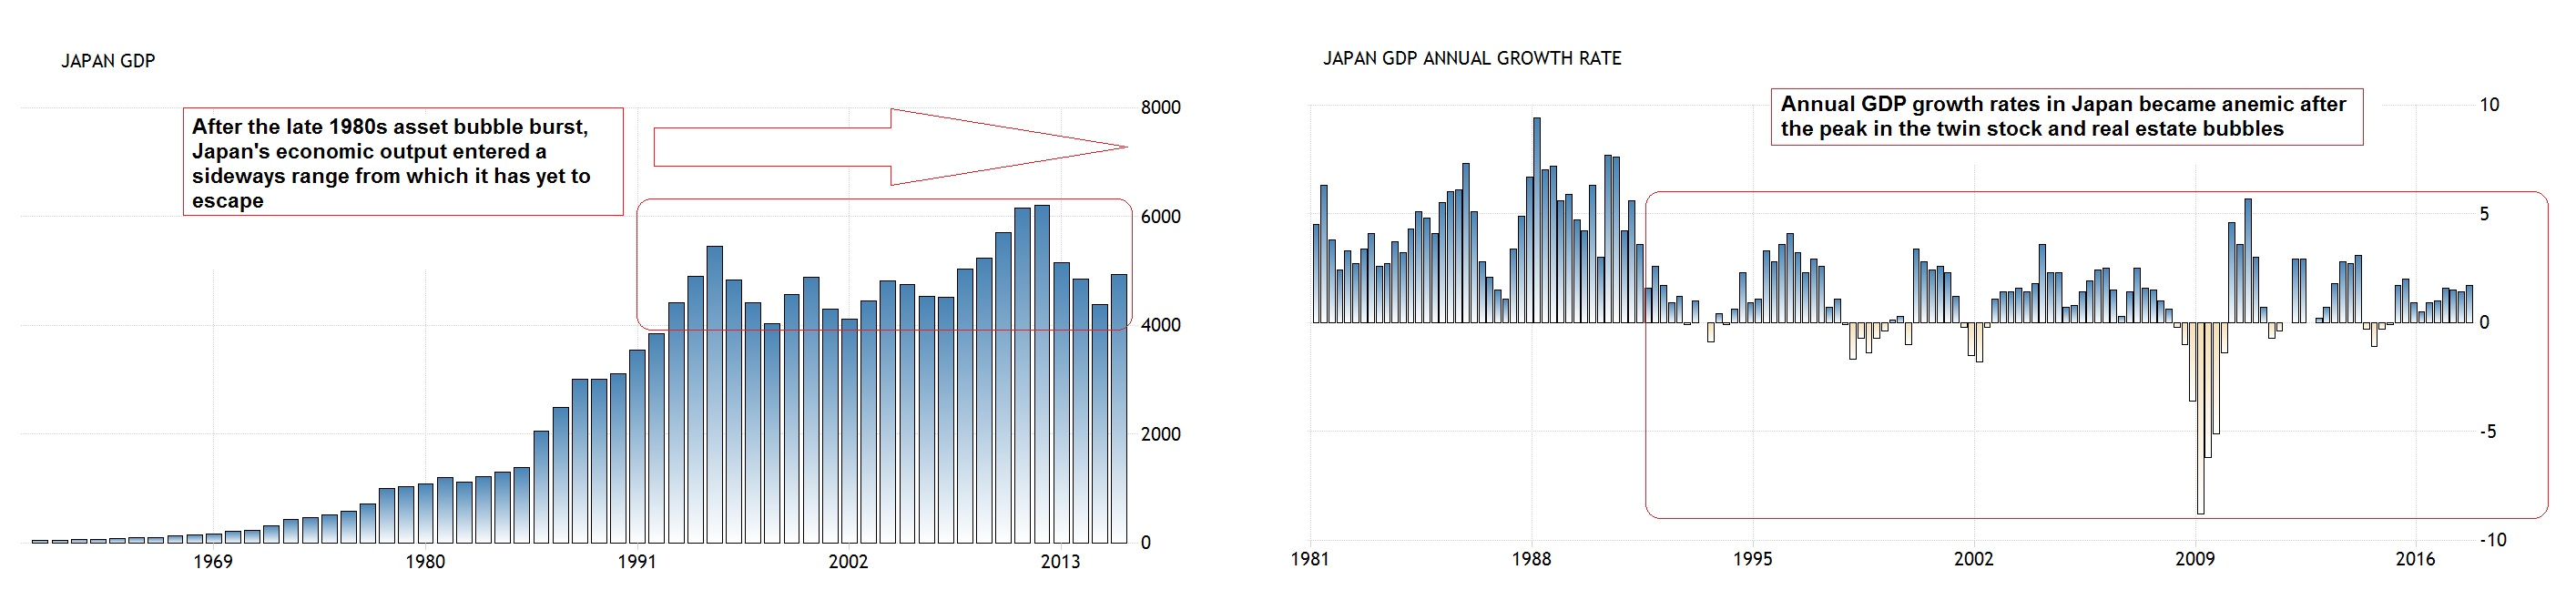 Japan Gross Domestic Product